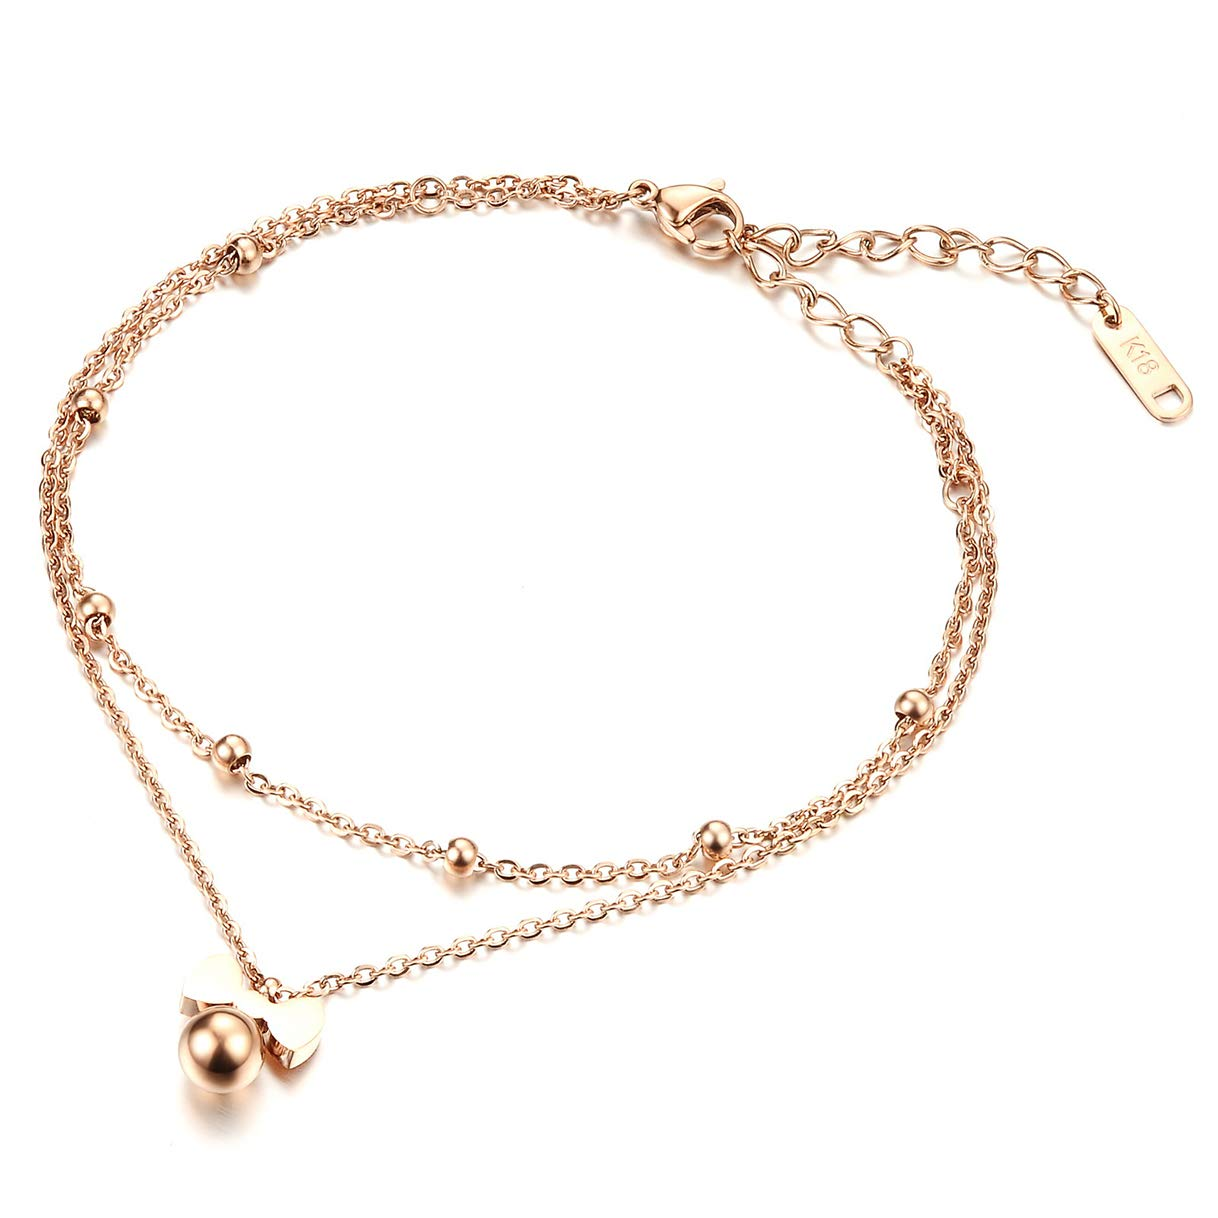 CHARMFAME Rose Gold Plated Stainless Steel Anklet Bow Ankle Bracelet 2 Layers Fashion Foot Jewelry for Women /& Girls